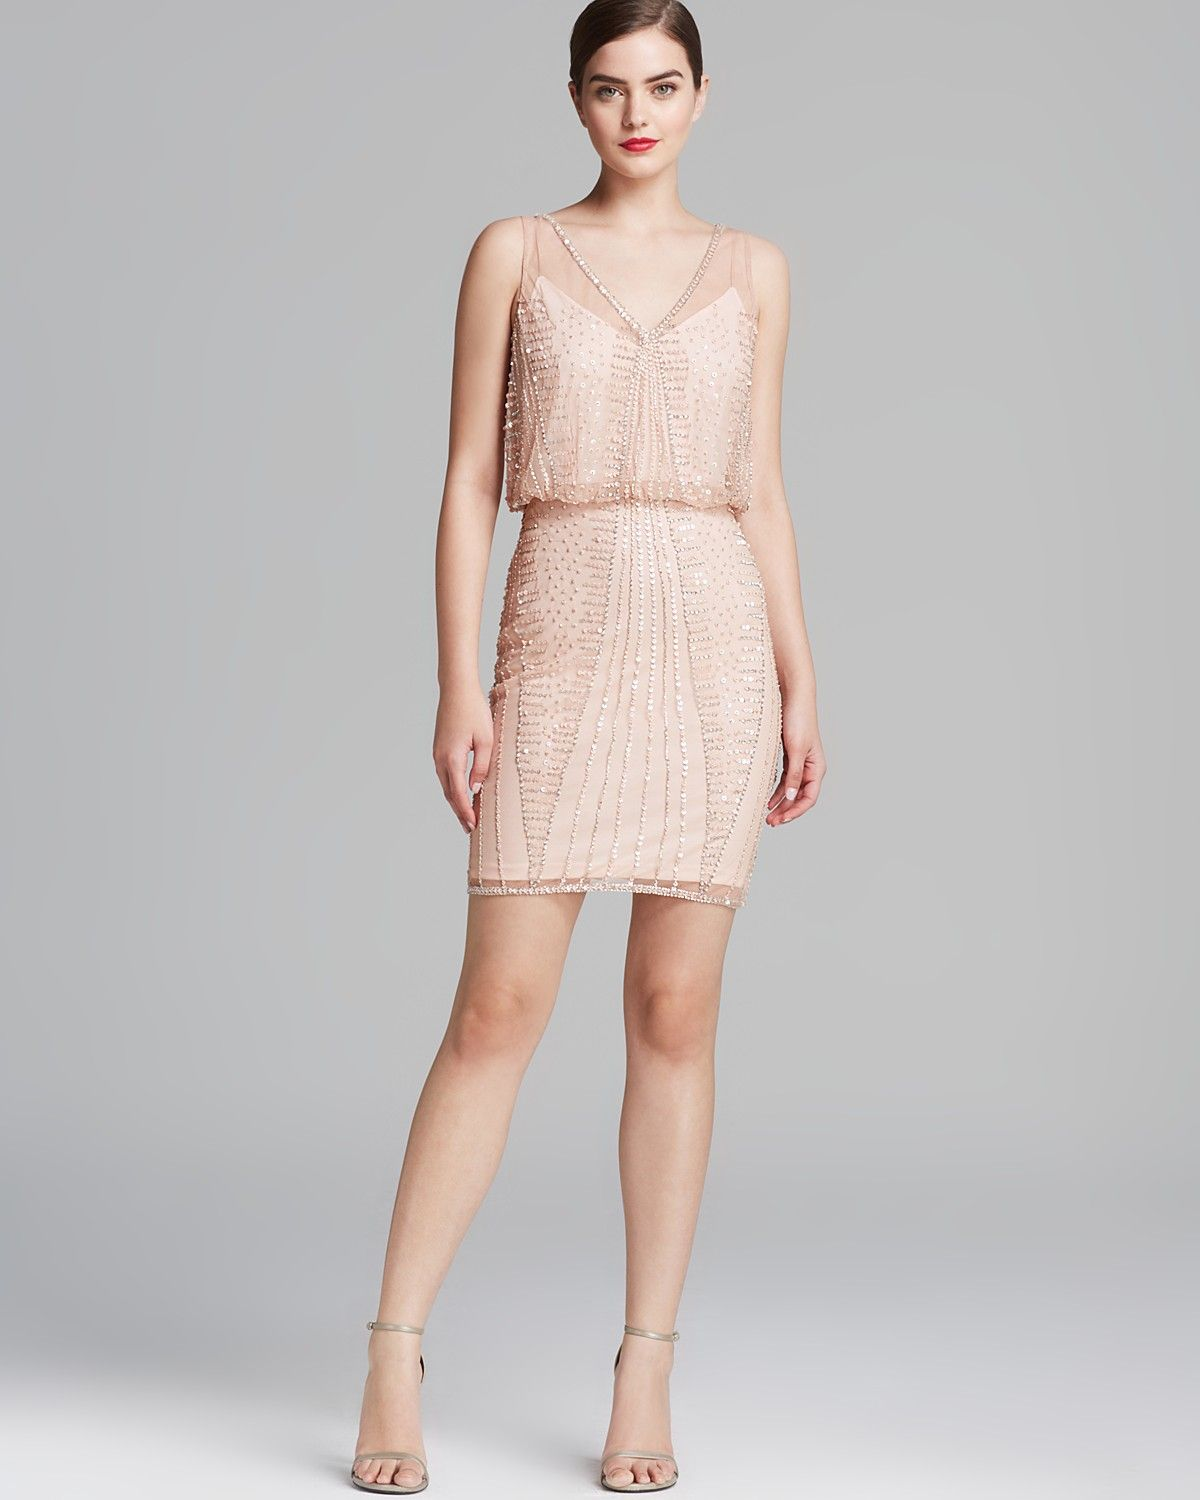 Adrianna papell dress v neck beaded blouson bloomingdales bridesmaid dress blush pink bloomingdales adrianna papell dress v neck beaded blouson ombrellifo Images